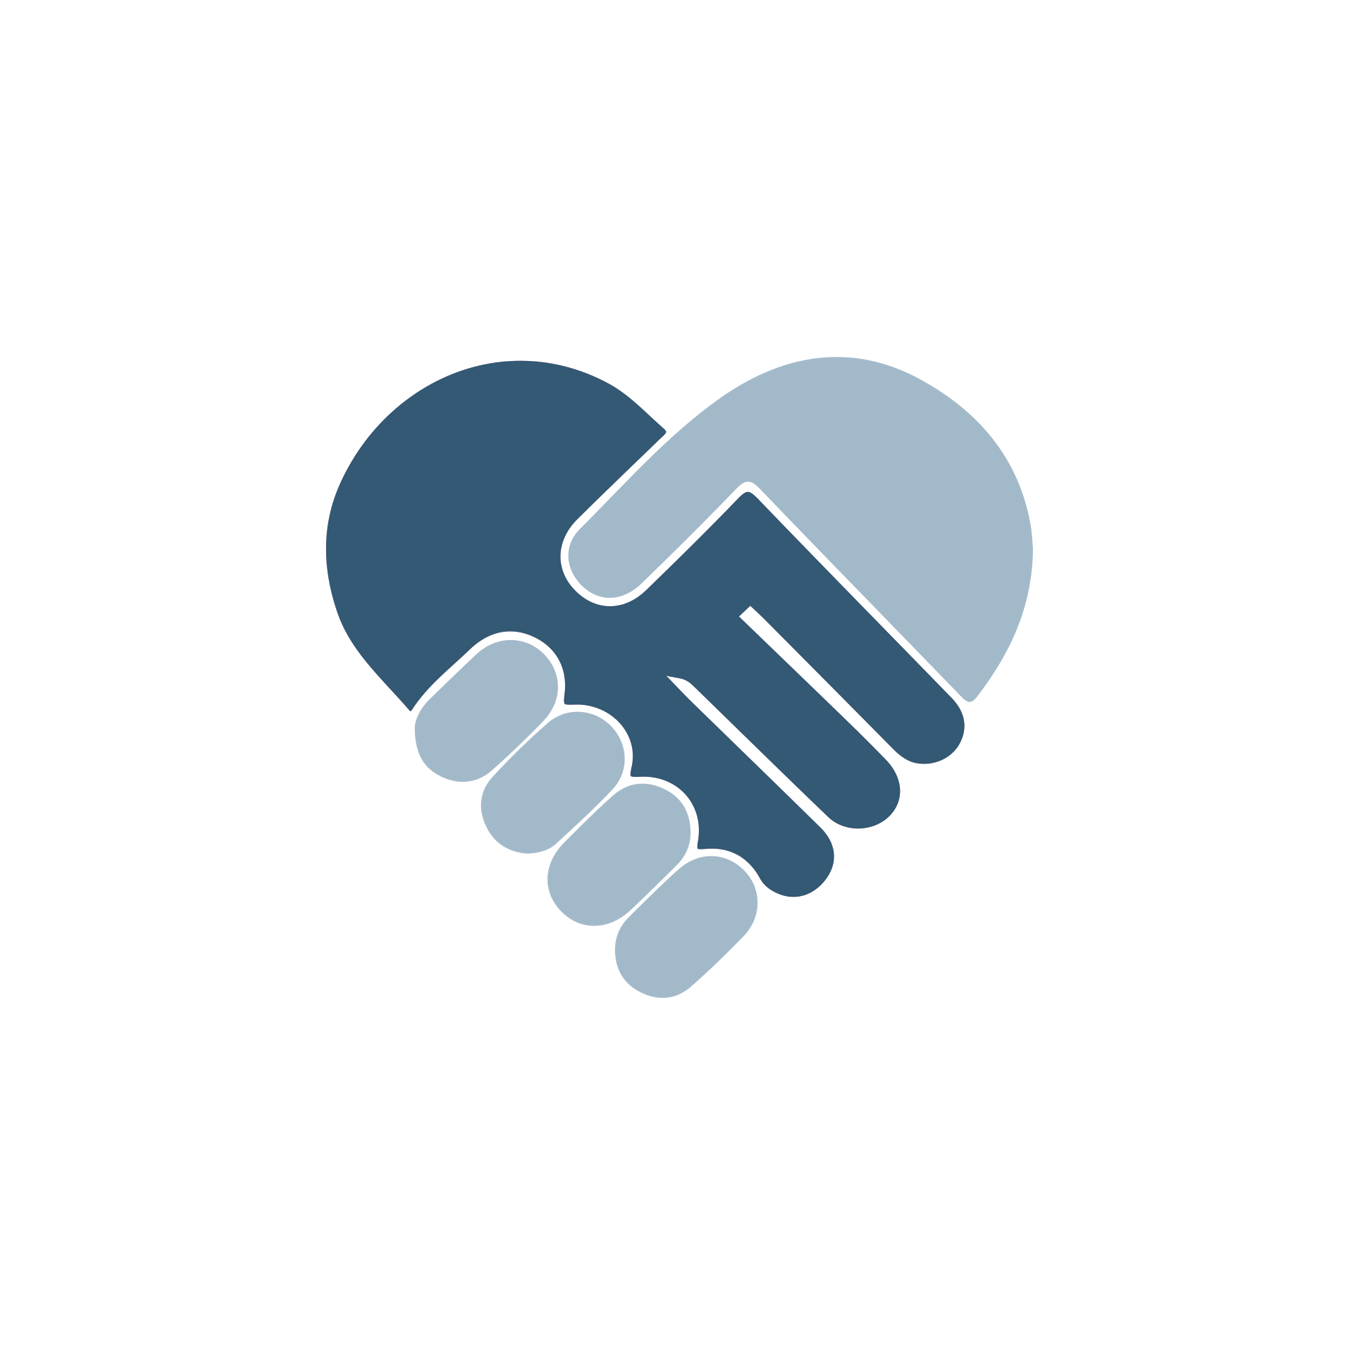 Healthy Relationships UNF blue handshake icon